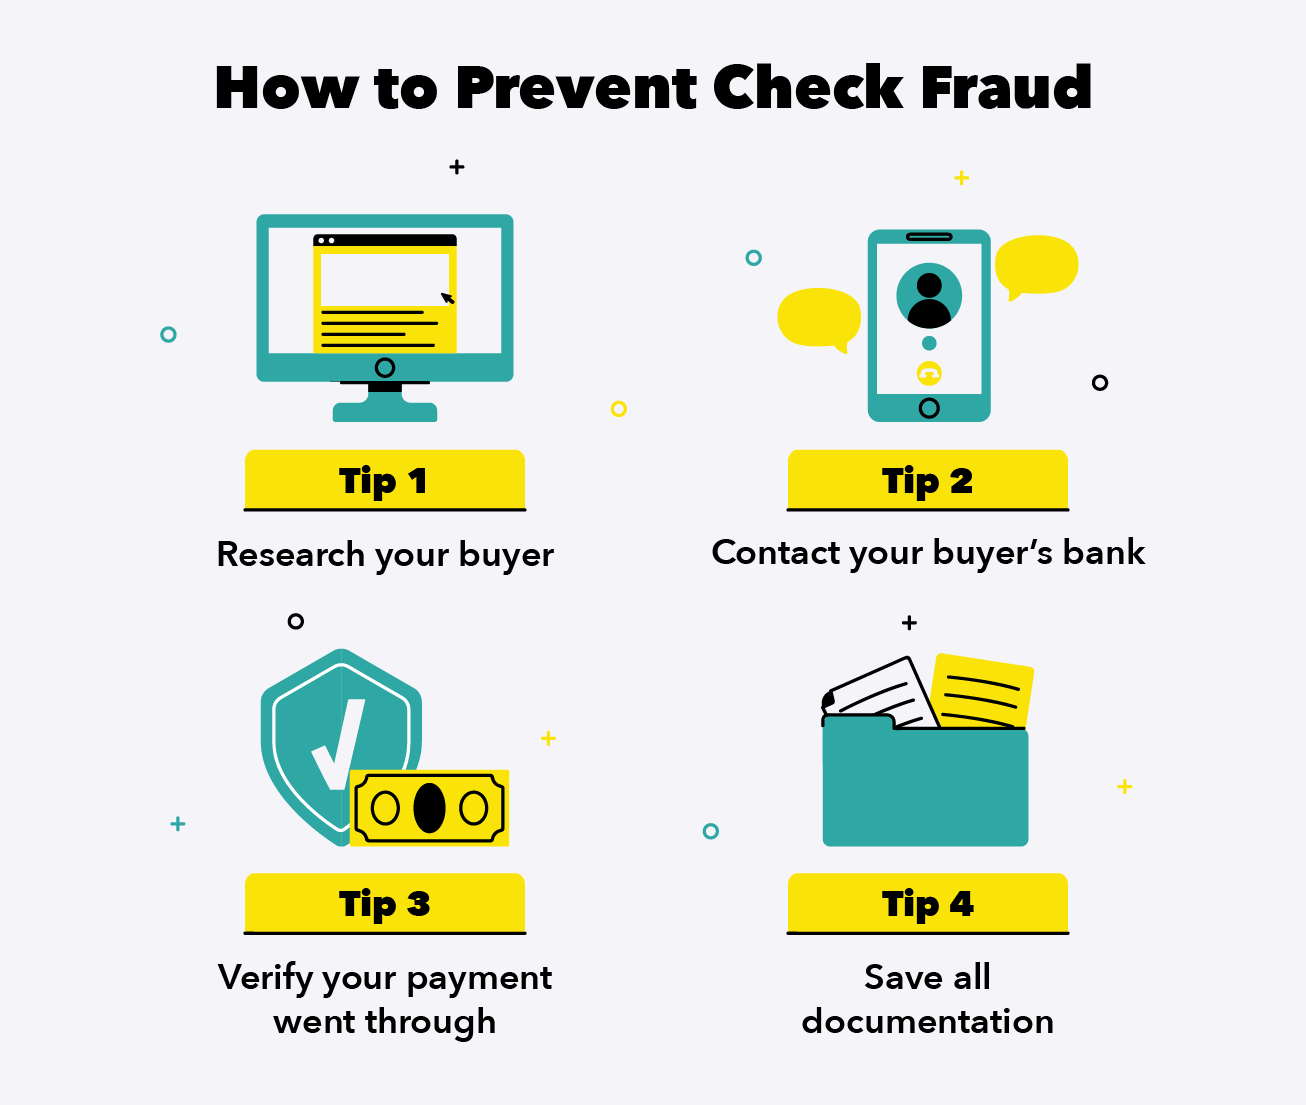 Illustrations show the 4 ways to prevent check fraud.